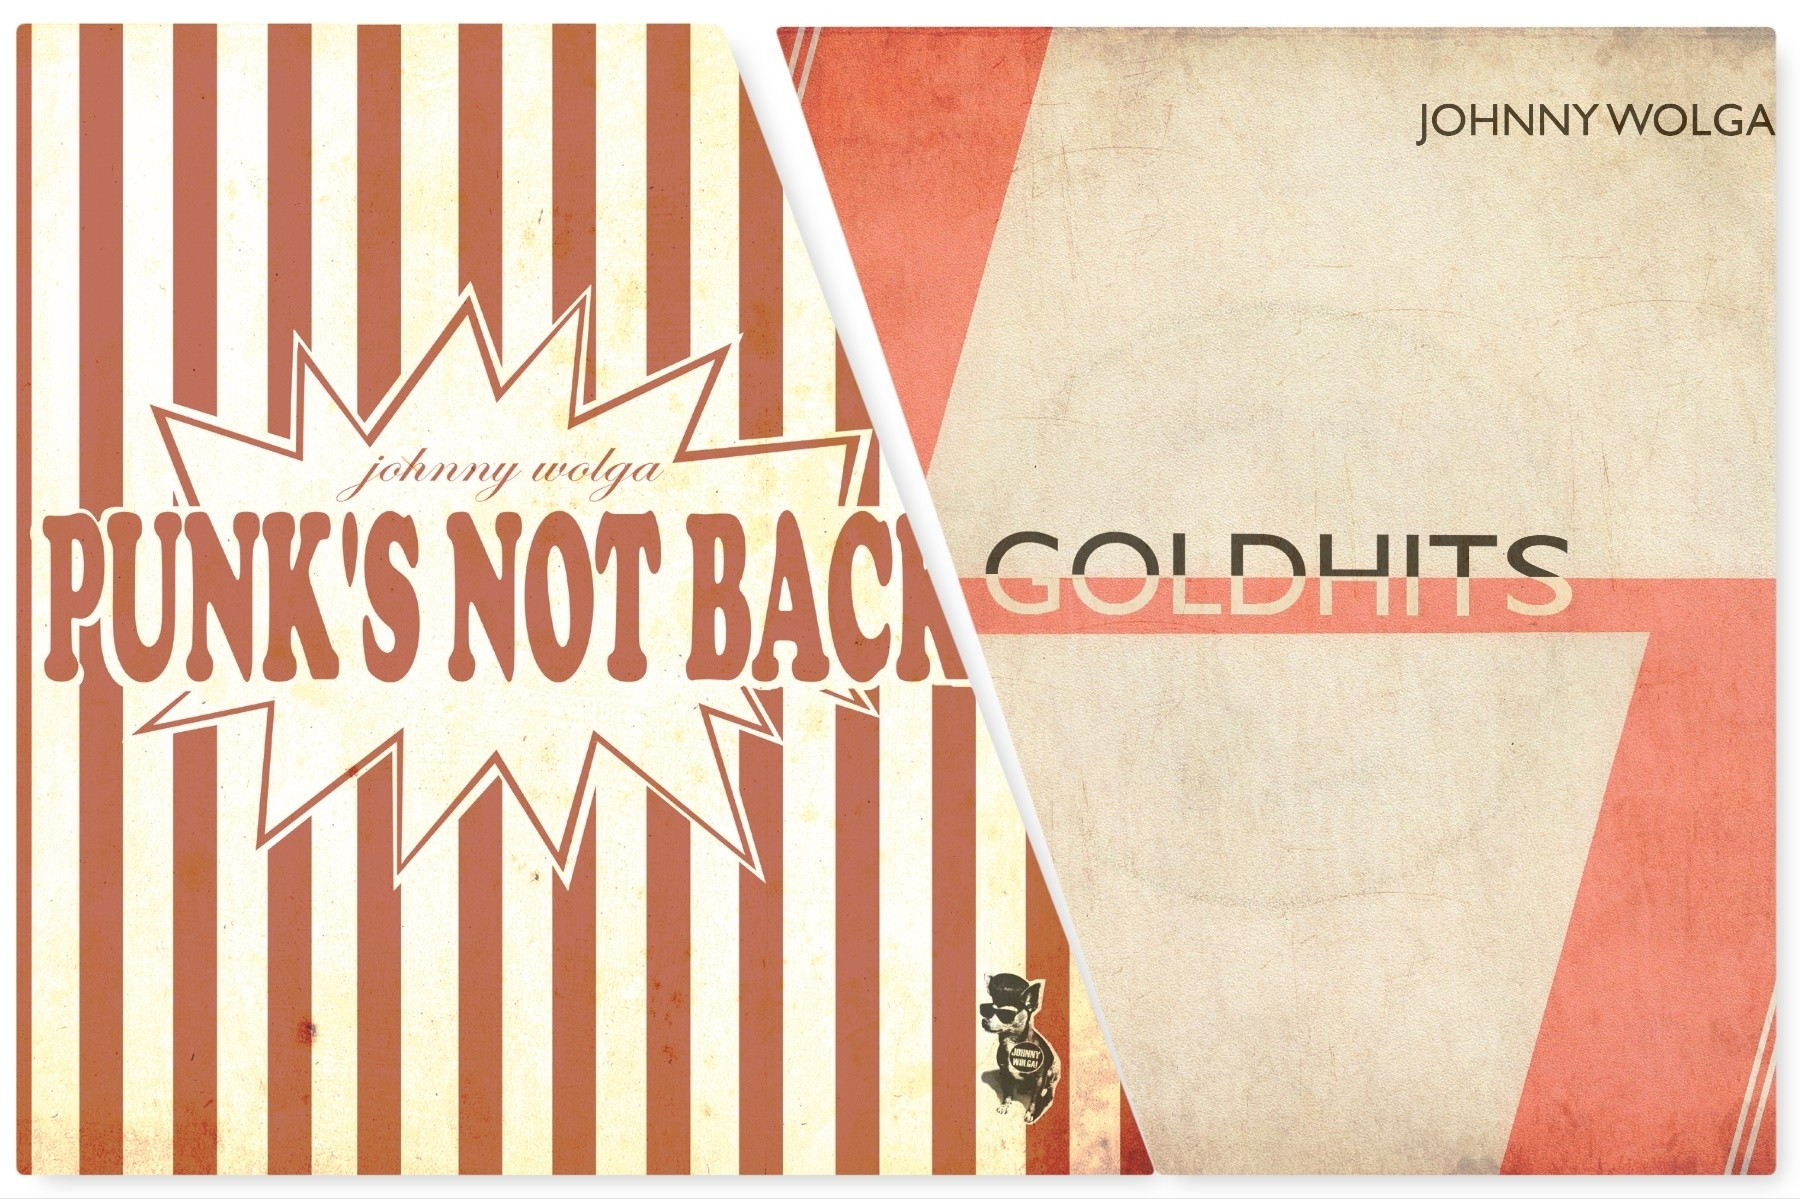 Johnny Wolga - package deal # Goldhits + Punk's not back CD